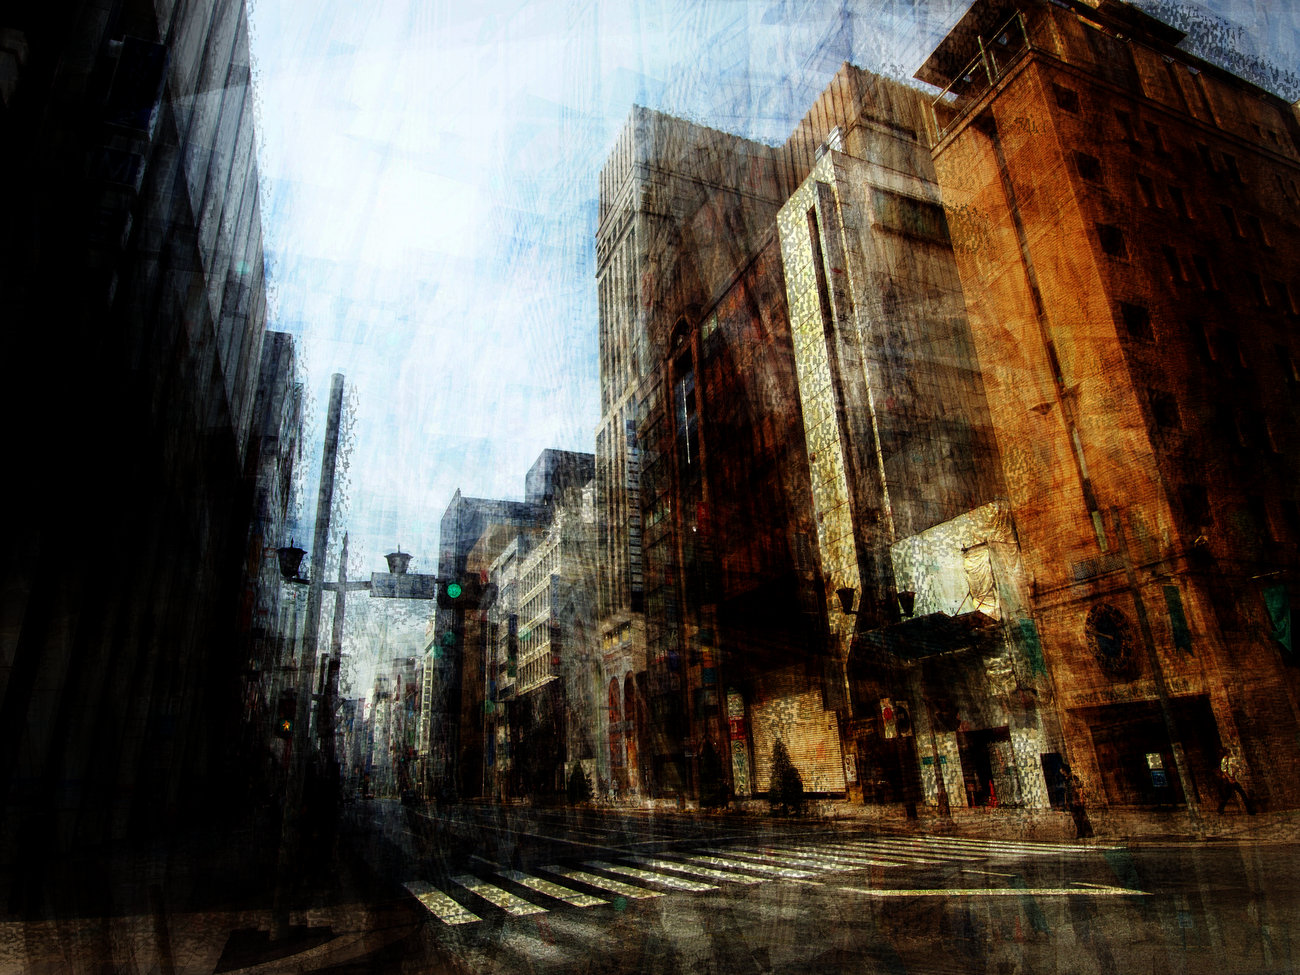 Cityscape exhibition, Blank Wall Gallery, Athens, Greece